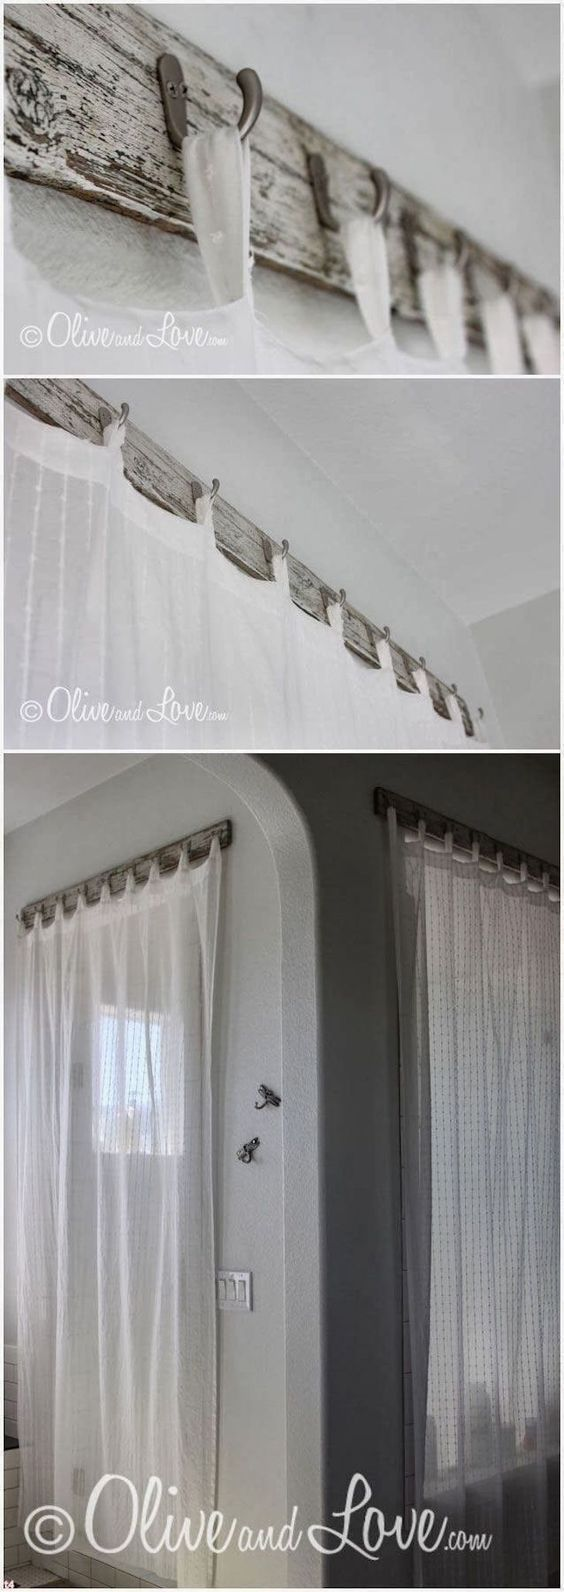 25 More Gorgeous Farmhouse Style Decoration Ideas | The Crafting Nook by Titicra..